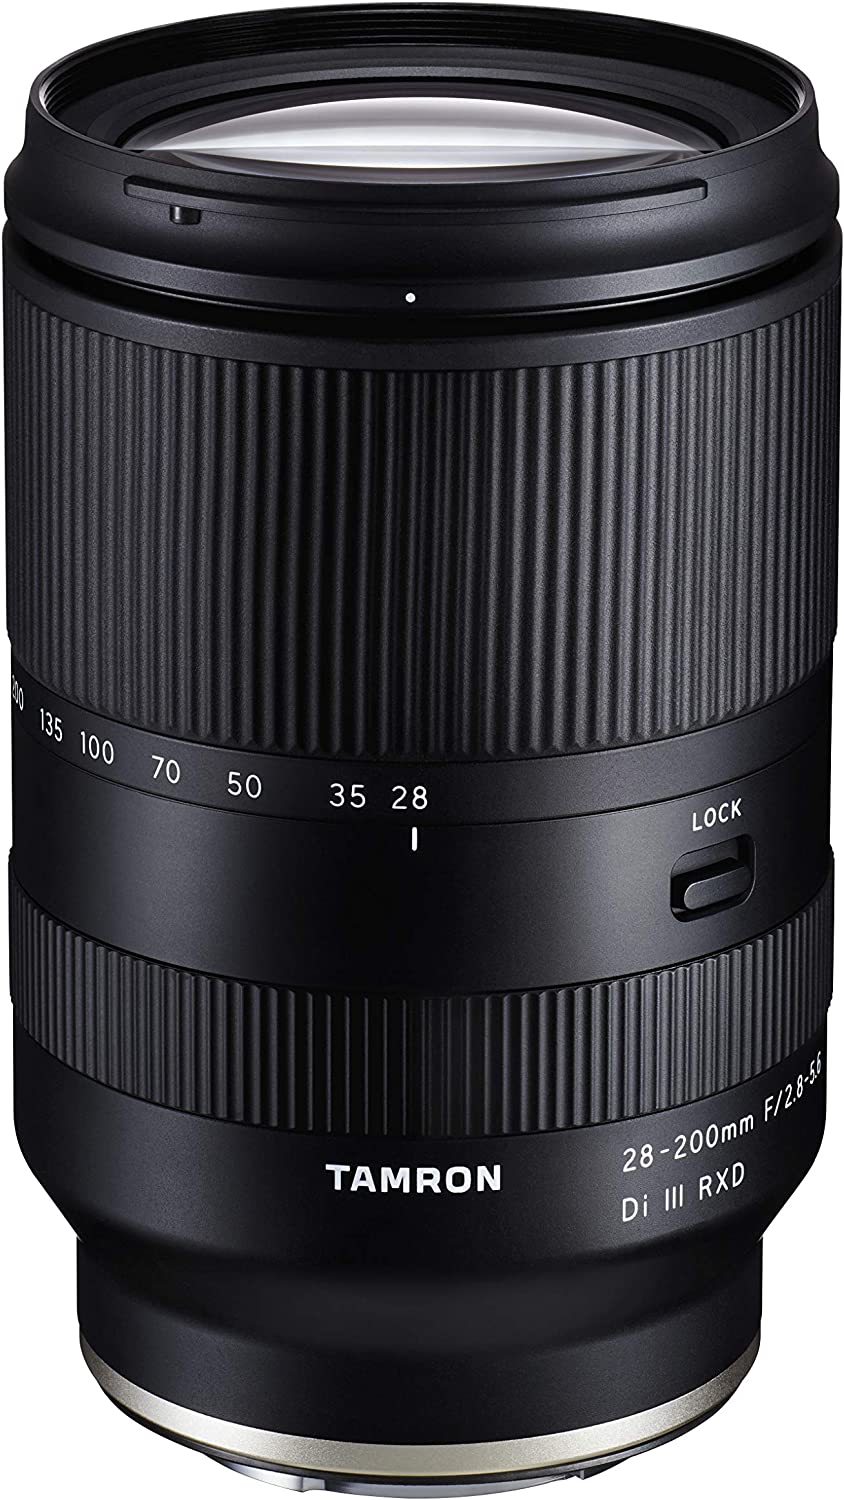 Tamron 28 200 Mm F 2 8 5 6 Di Iii Rxd For Sony E Mount Camera Photo